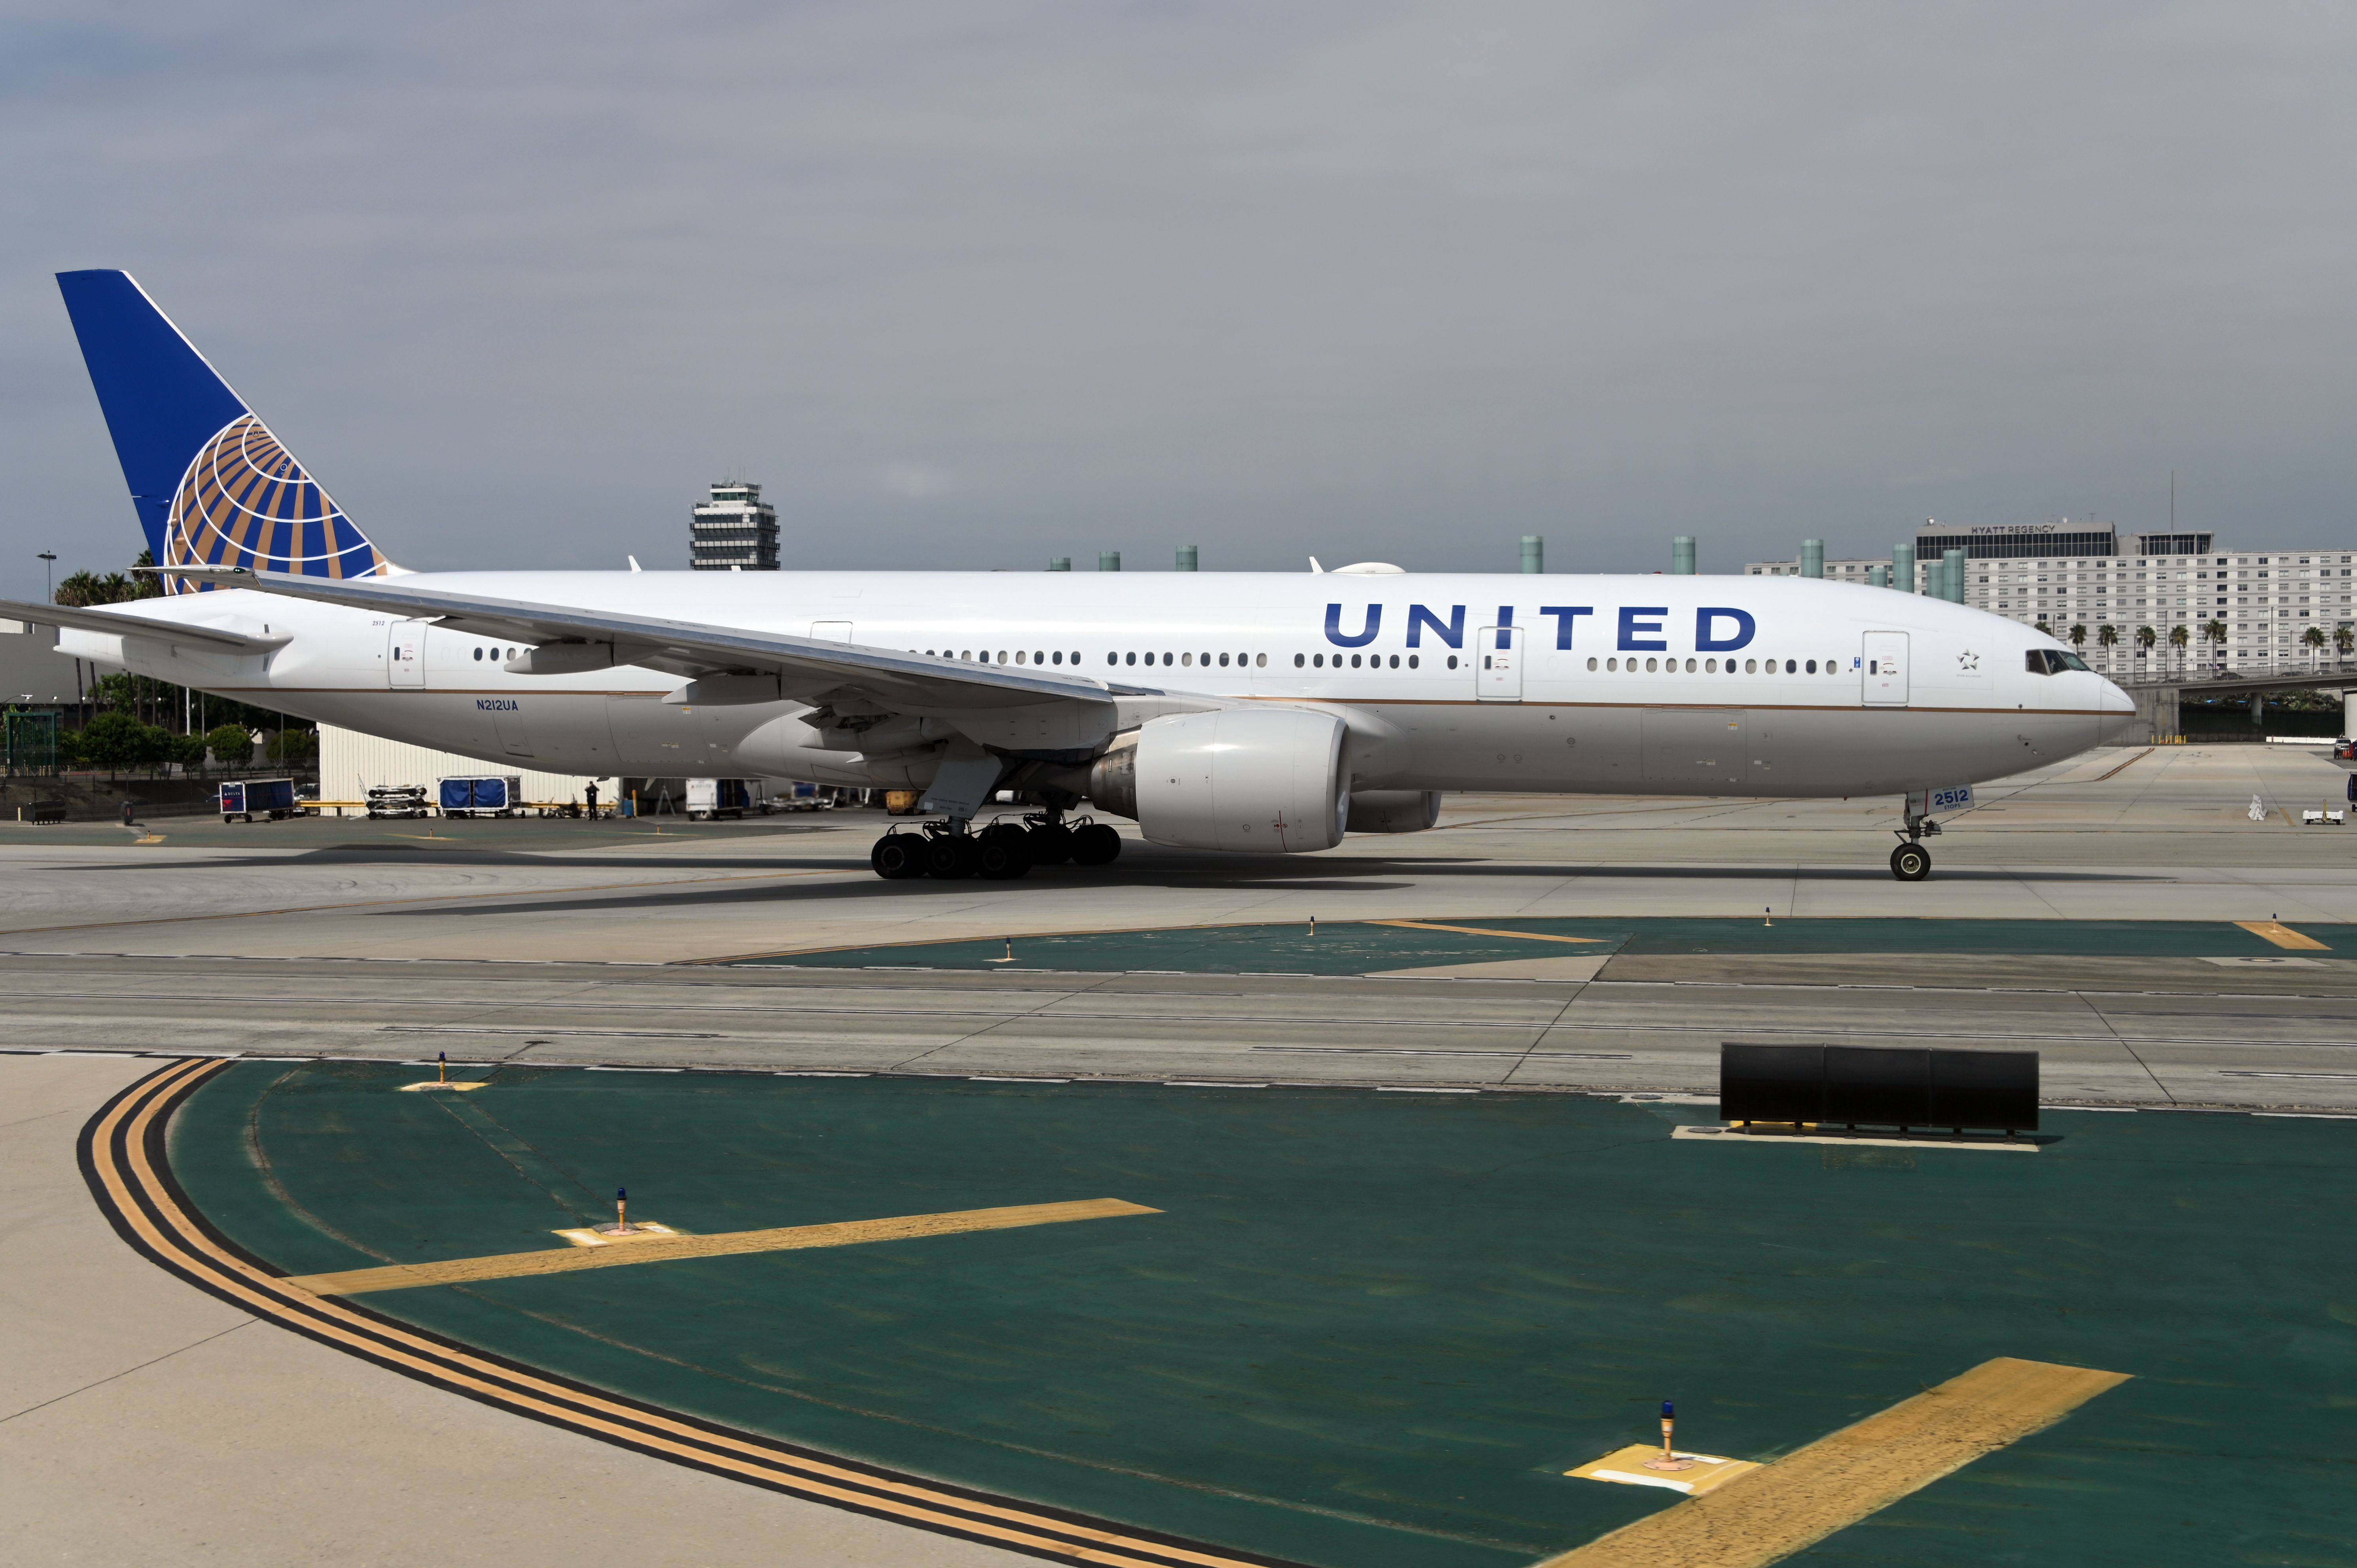 A United Airlines plane taxis at Los Angeles International Airport.